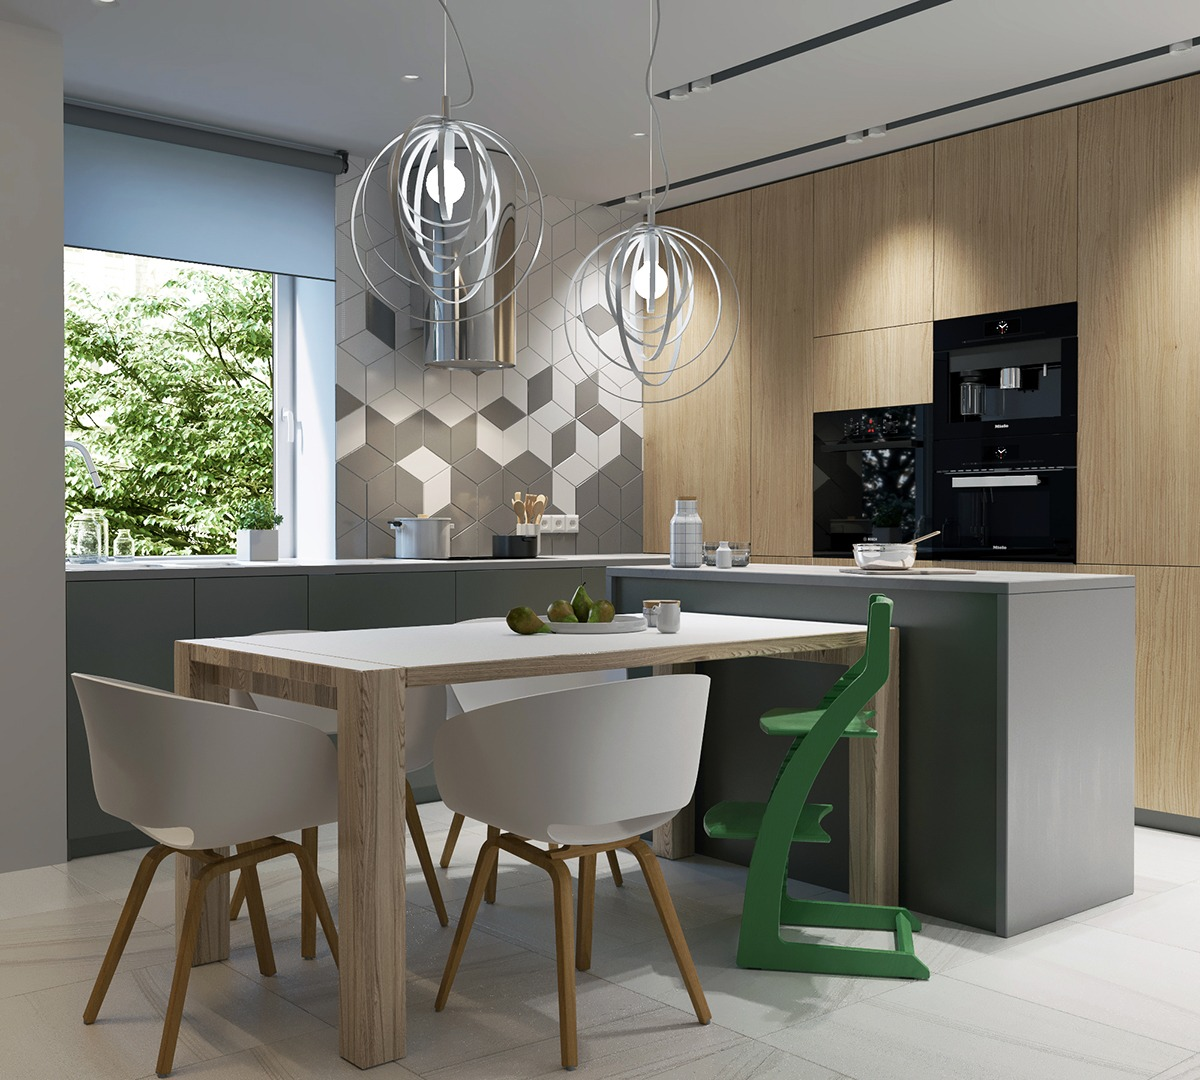 Modern Kitchen Wood Table Green Highchair Black Appliances - 2 stunningly beautiful homes decorated in modern scandinavian style